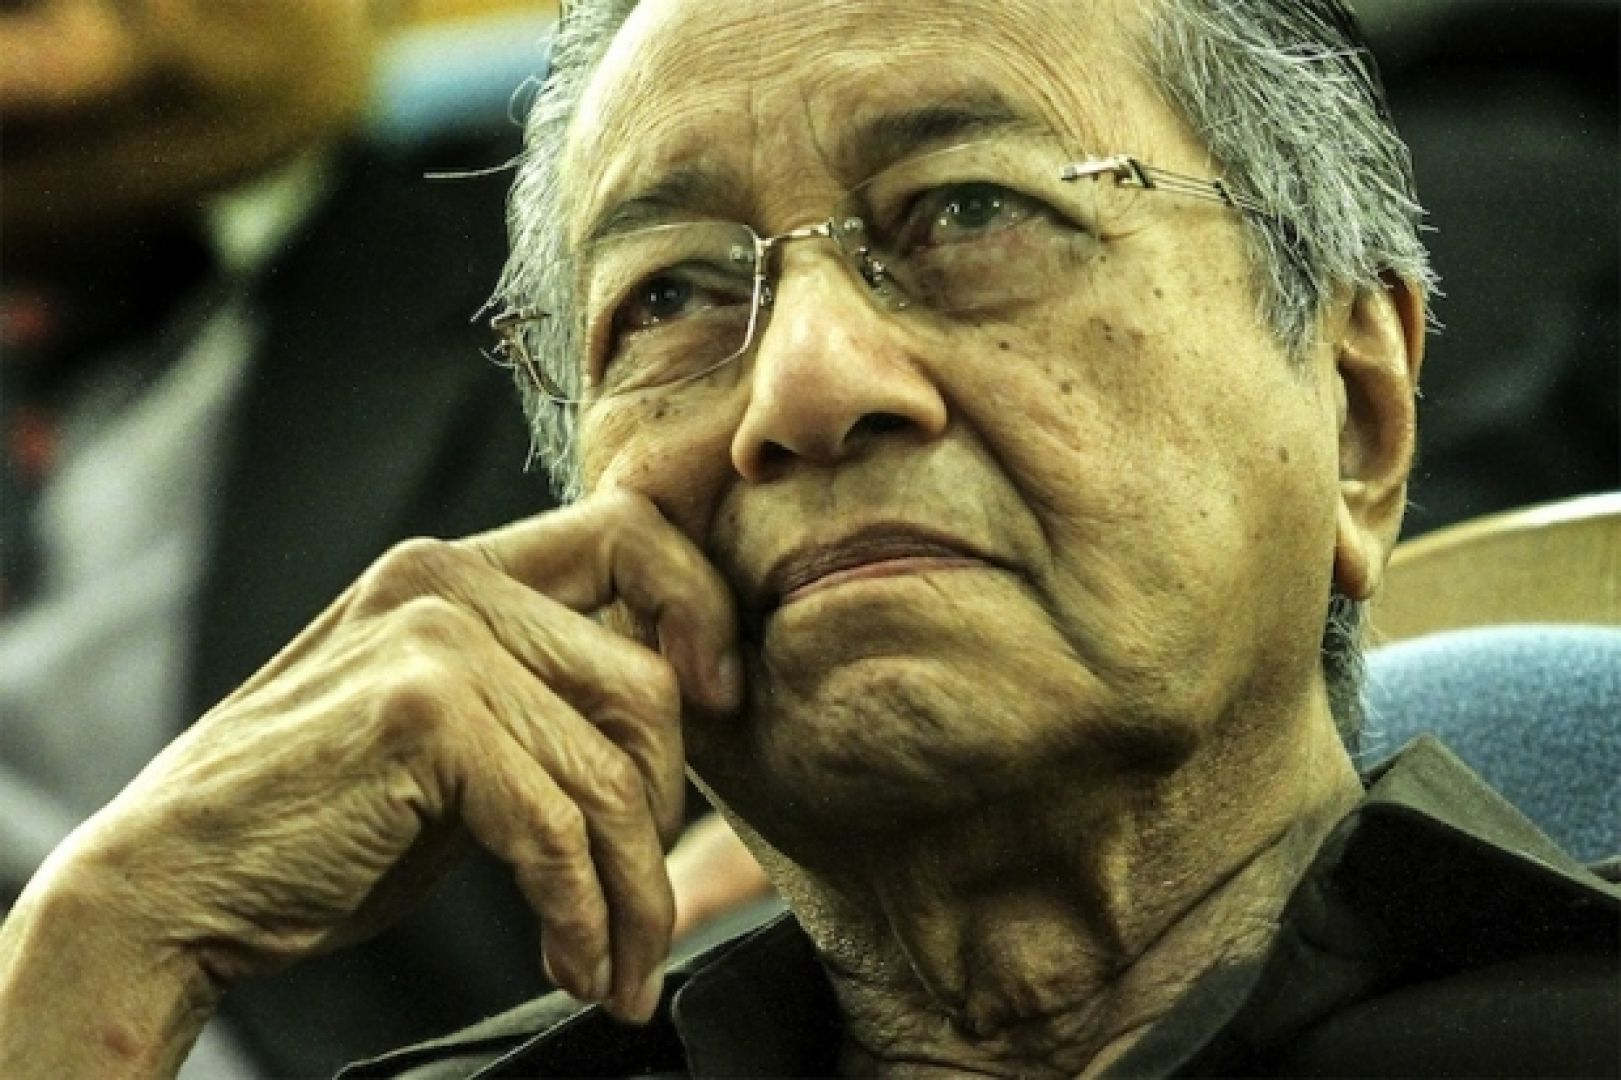 Dr Mahathir says treating multiracial communities equally using meritocracy has failed to produce tangible results. Photo: The Malay Mail Online